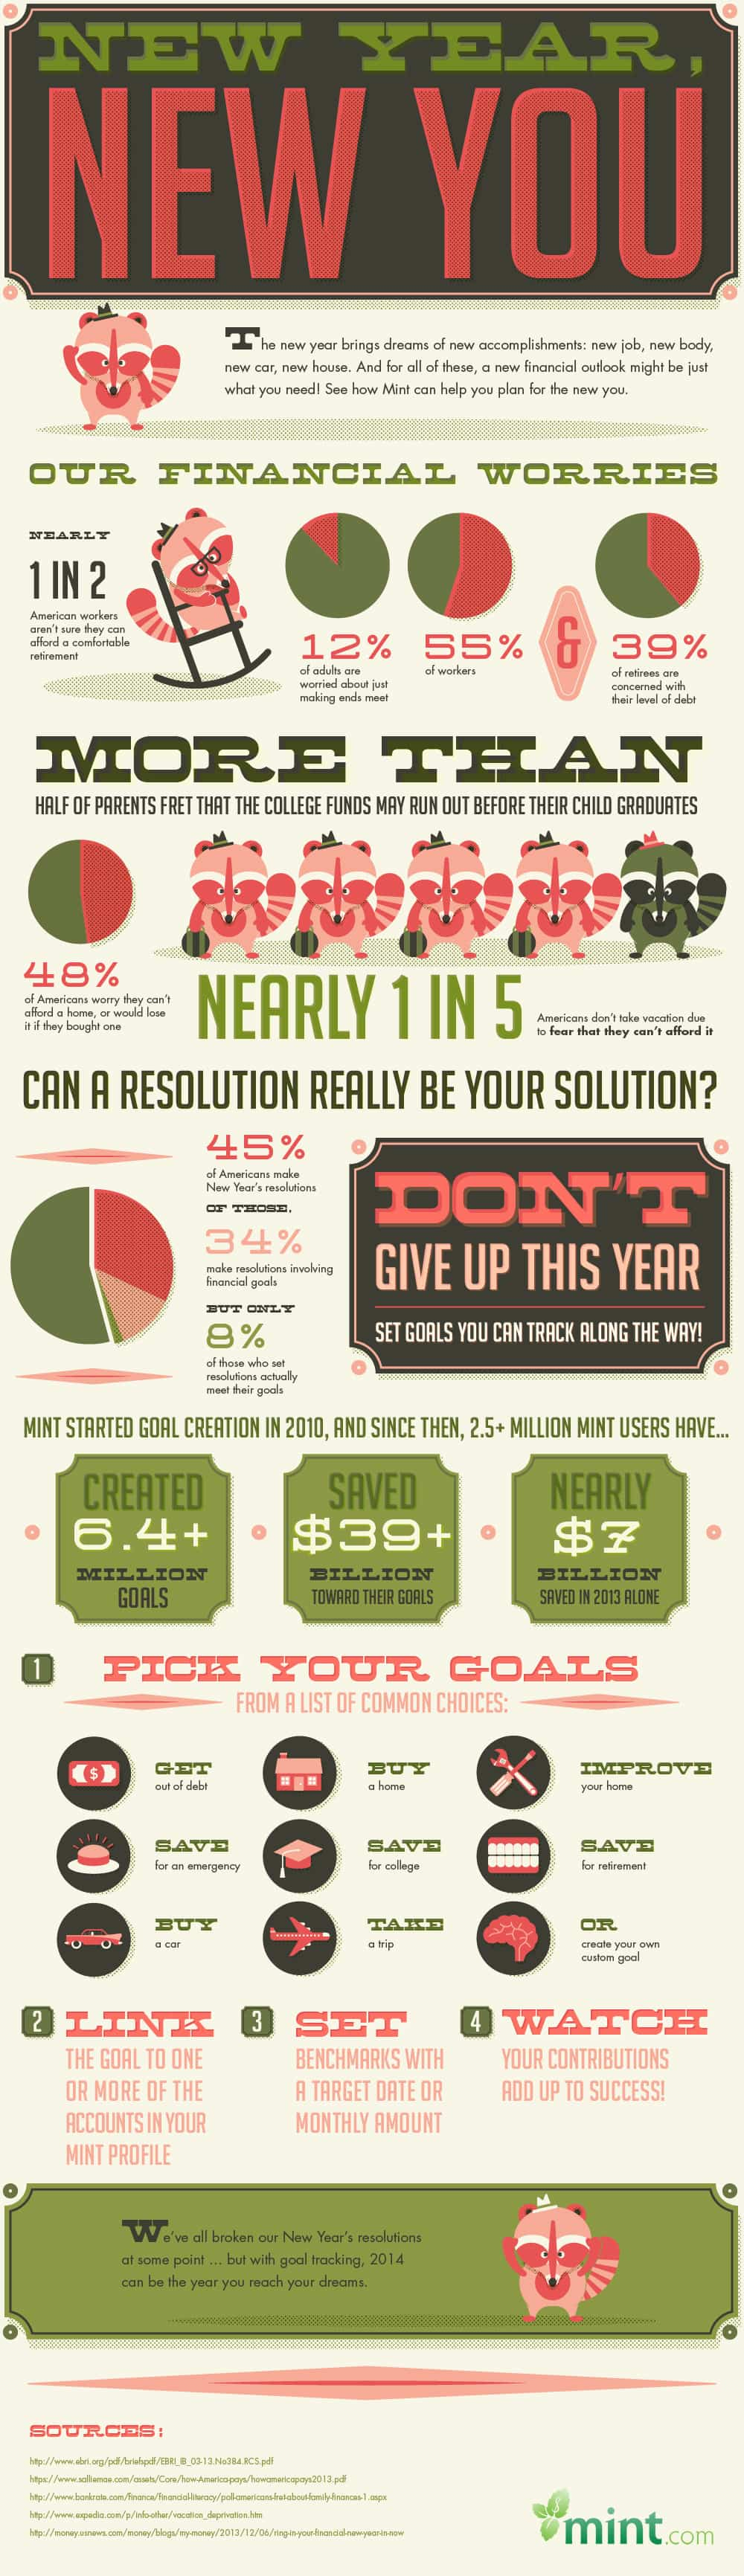 A New Year, A New You: How to Make Your Financial Resolutions Stick :: Mint.com/blog